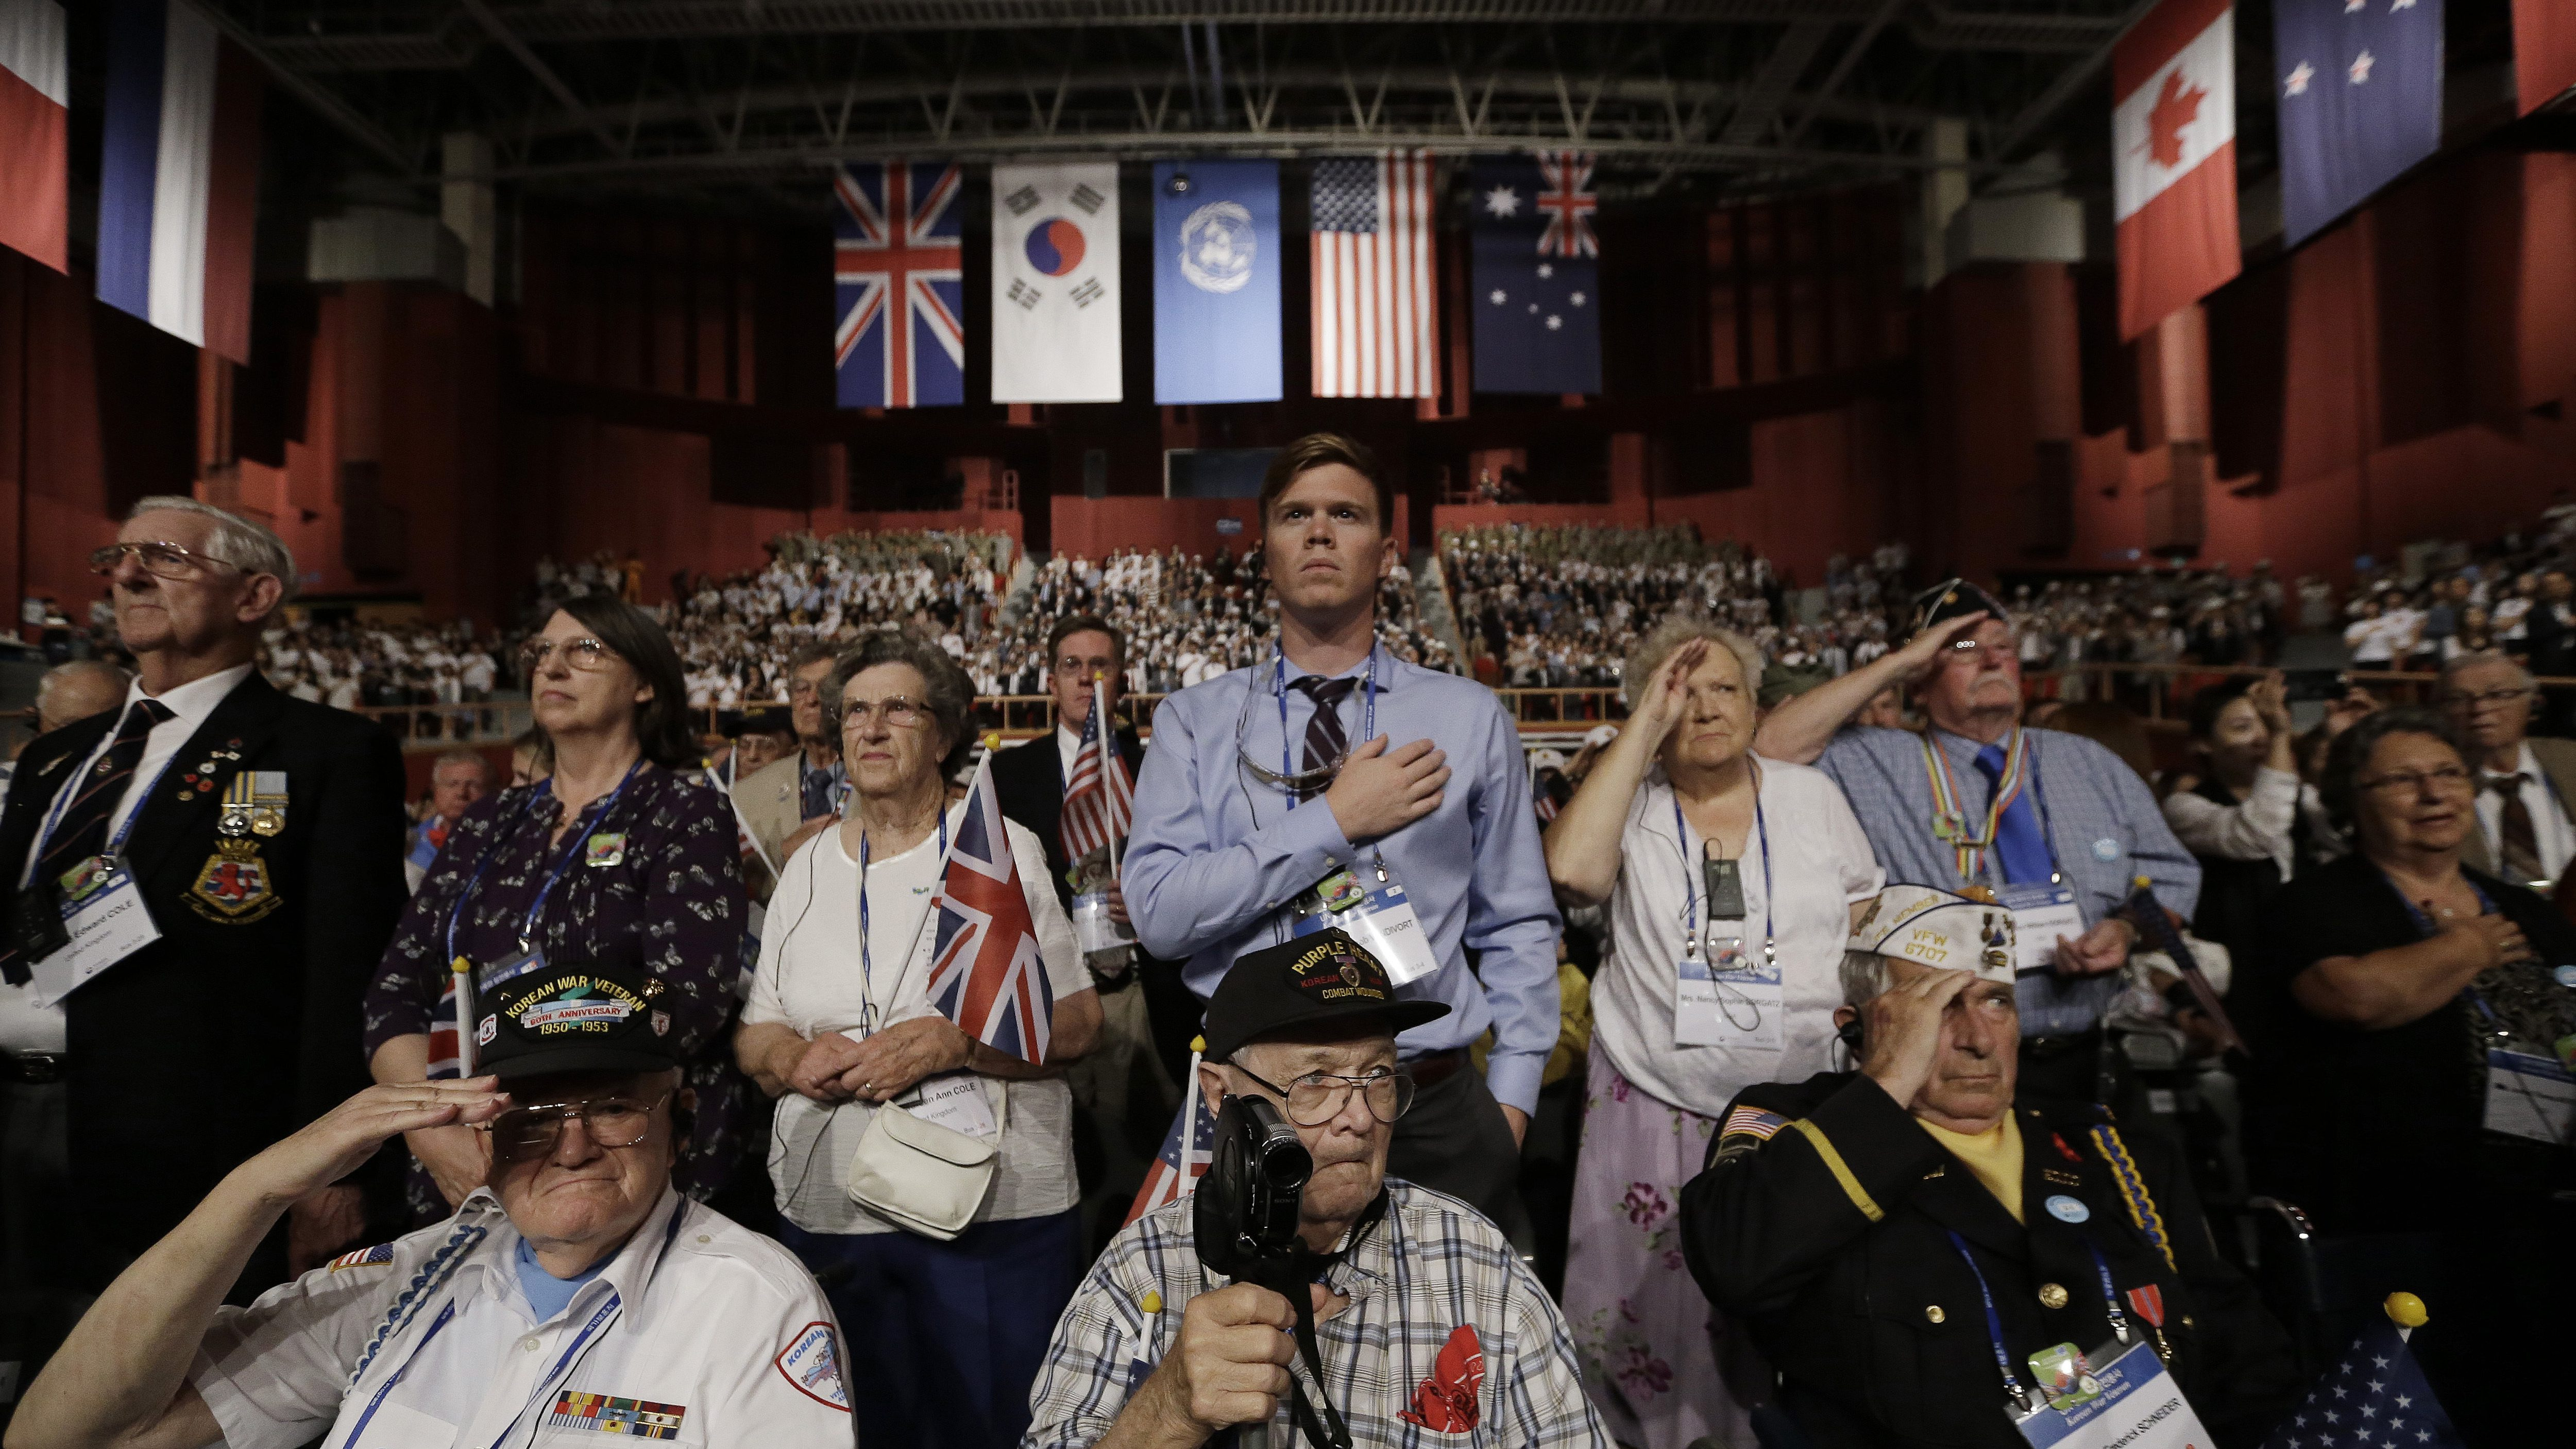 Foreign veterans of the Korean War and their family members salute during a commemorative ceremony marking the 63rd anniversary of the Armistice Agreement and UN Forces Participation in the Korean War in Seoul, South Korea, Wednesday, July 27, 2016. South Korea is accusing rival North Korea of floating propaganda leaflets via a river in the first such incident. (AP Photo/Ahn Young-joon)